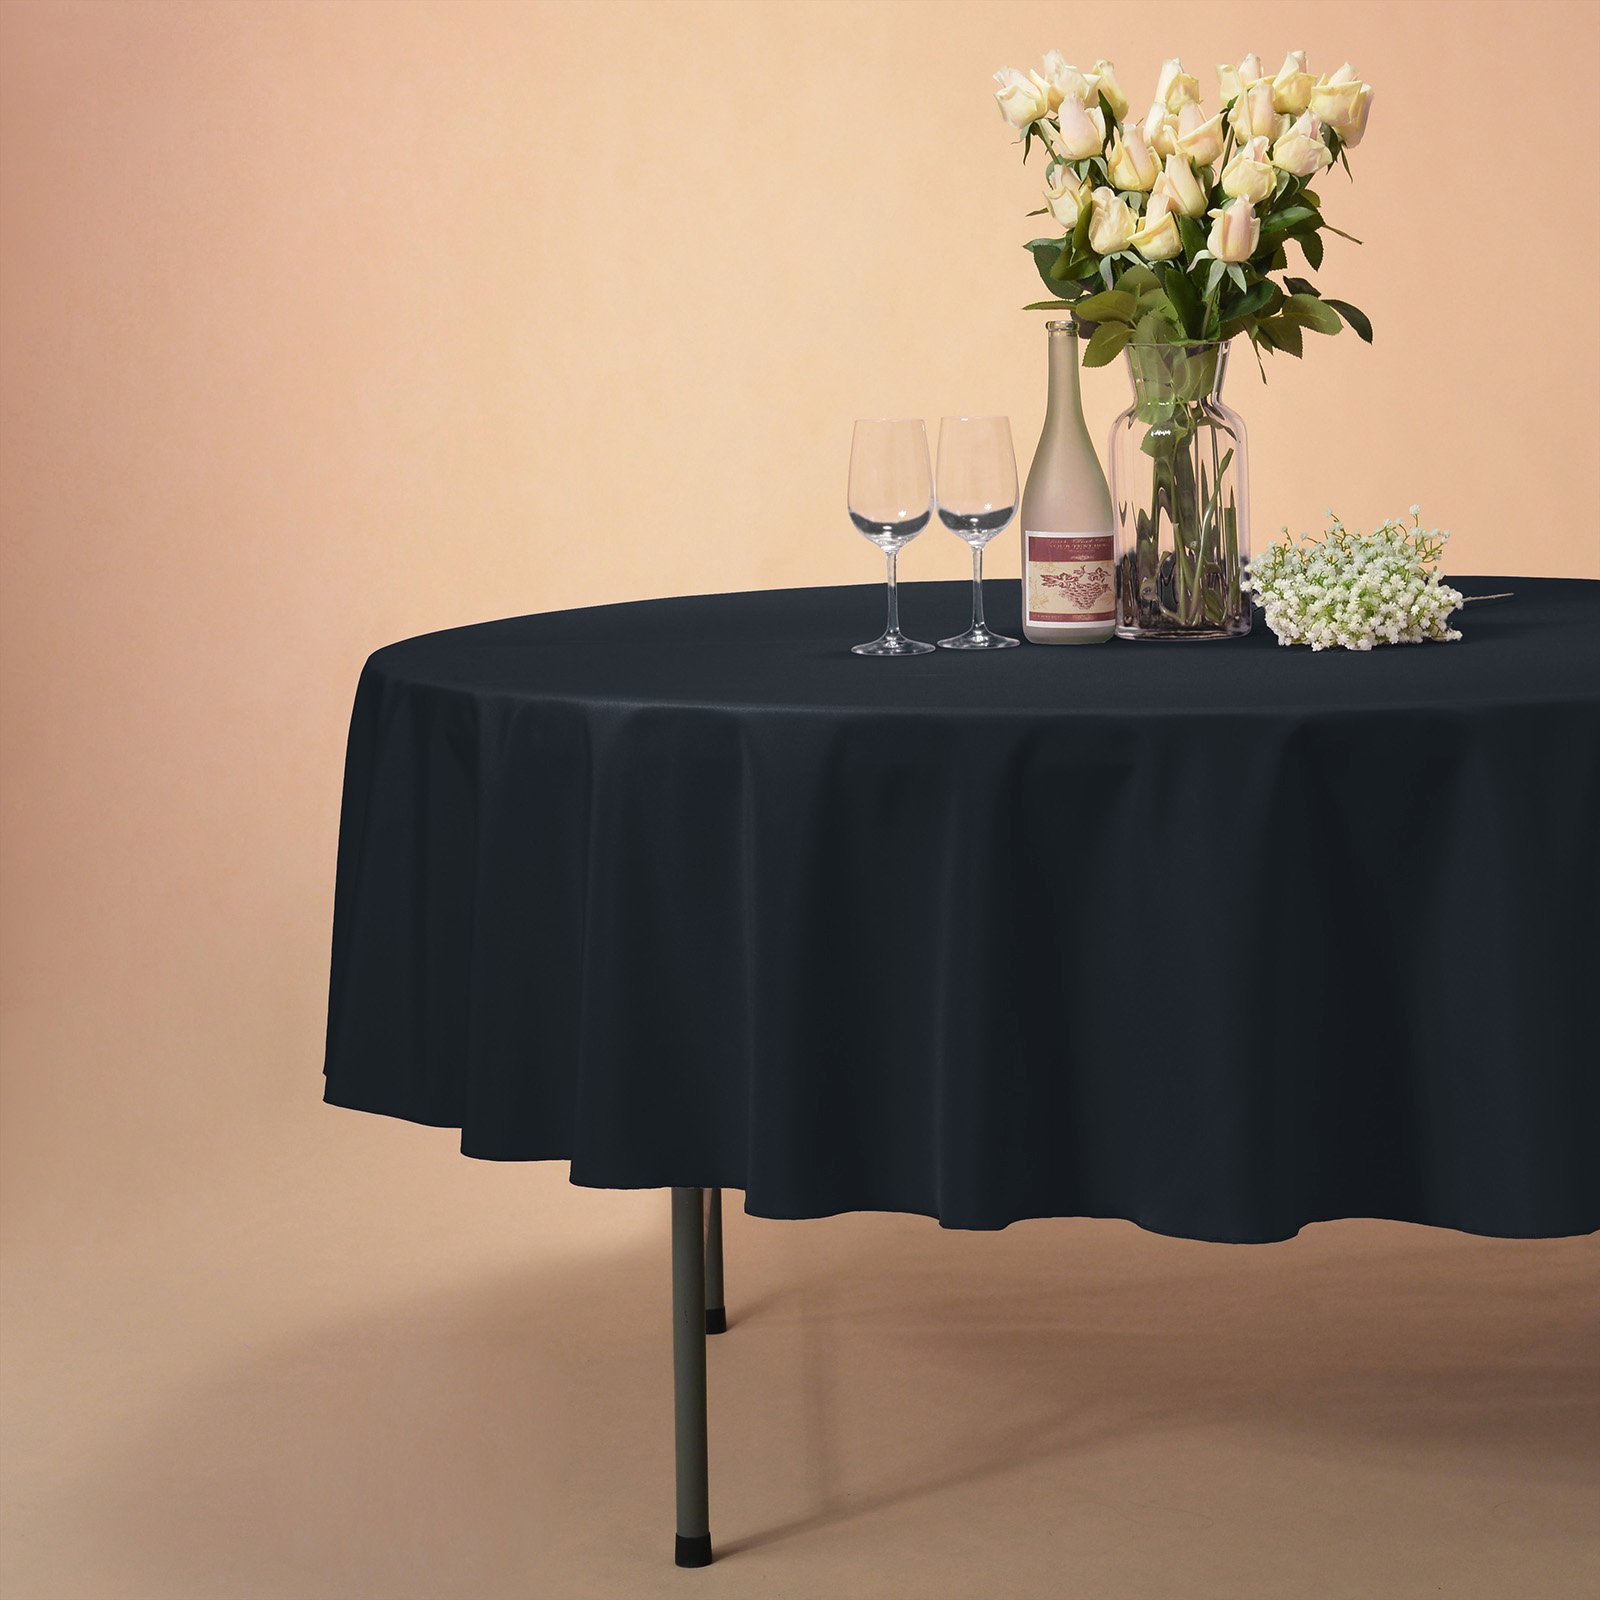 VEEYOO Tablecloth 90 inch Round Solid Polyester Table Cloth for Wedding Restaurant Party Kitchen Dining Table Christmas, Navy by VEEYOO (Image #4)